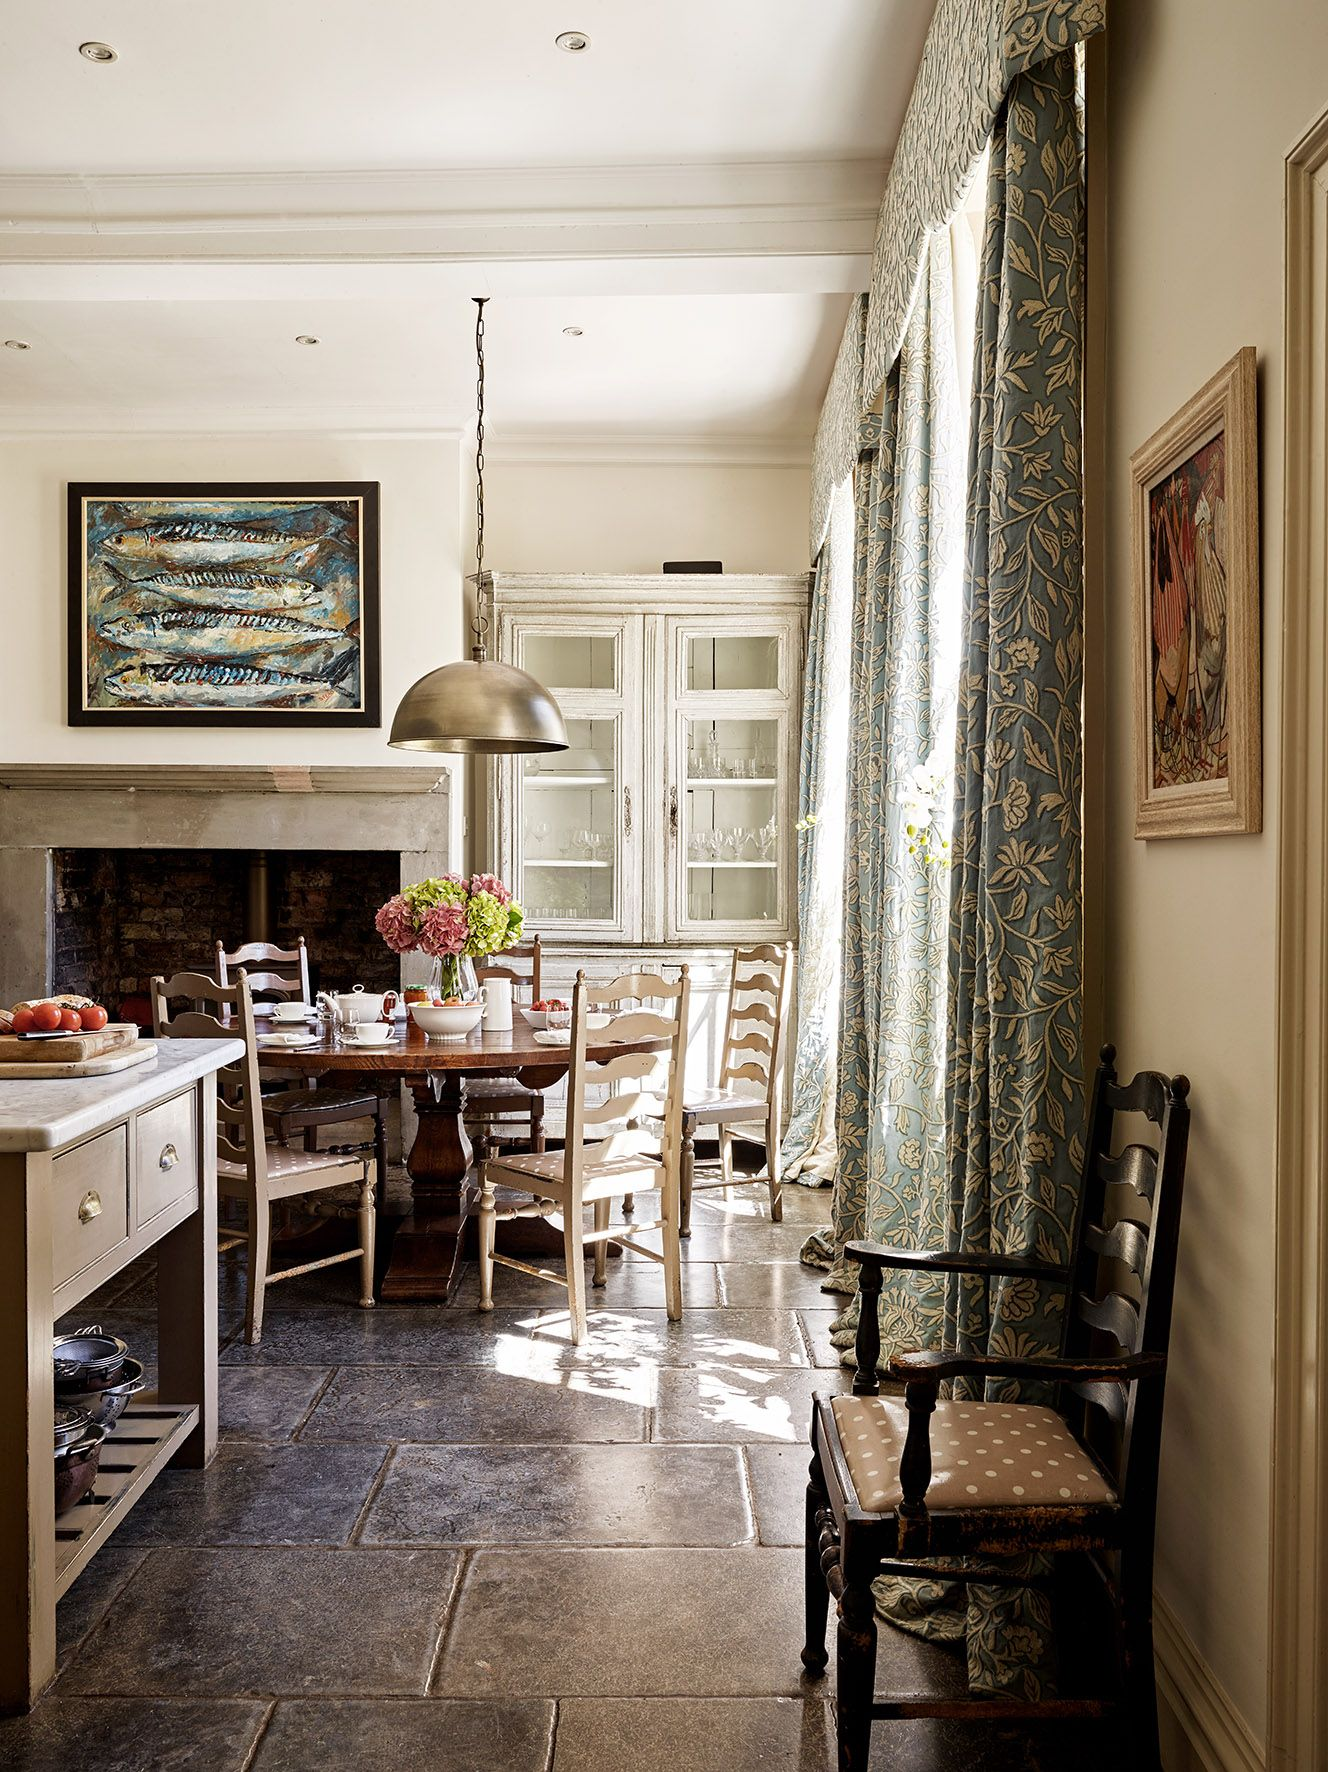 Kitchen Dining Interior Design: Tor Interiors Completes The